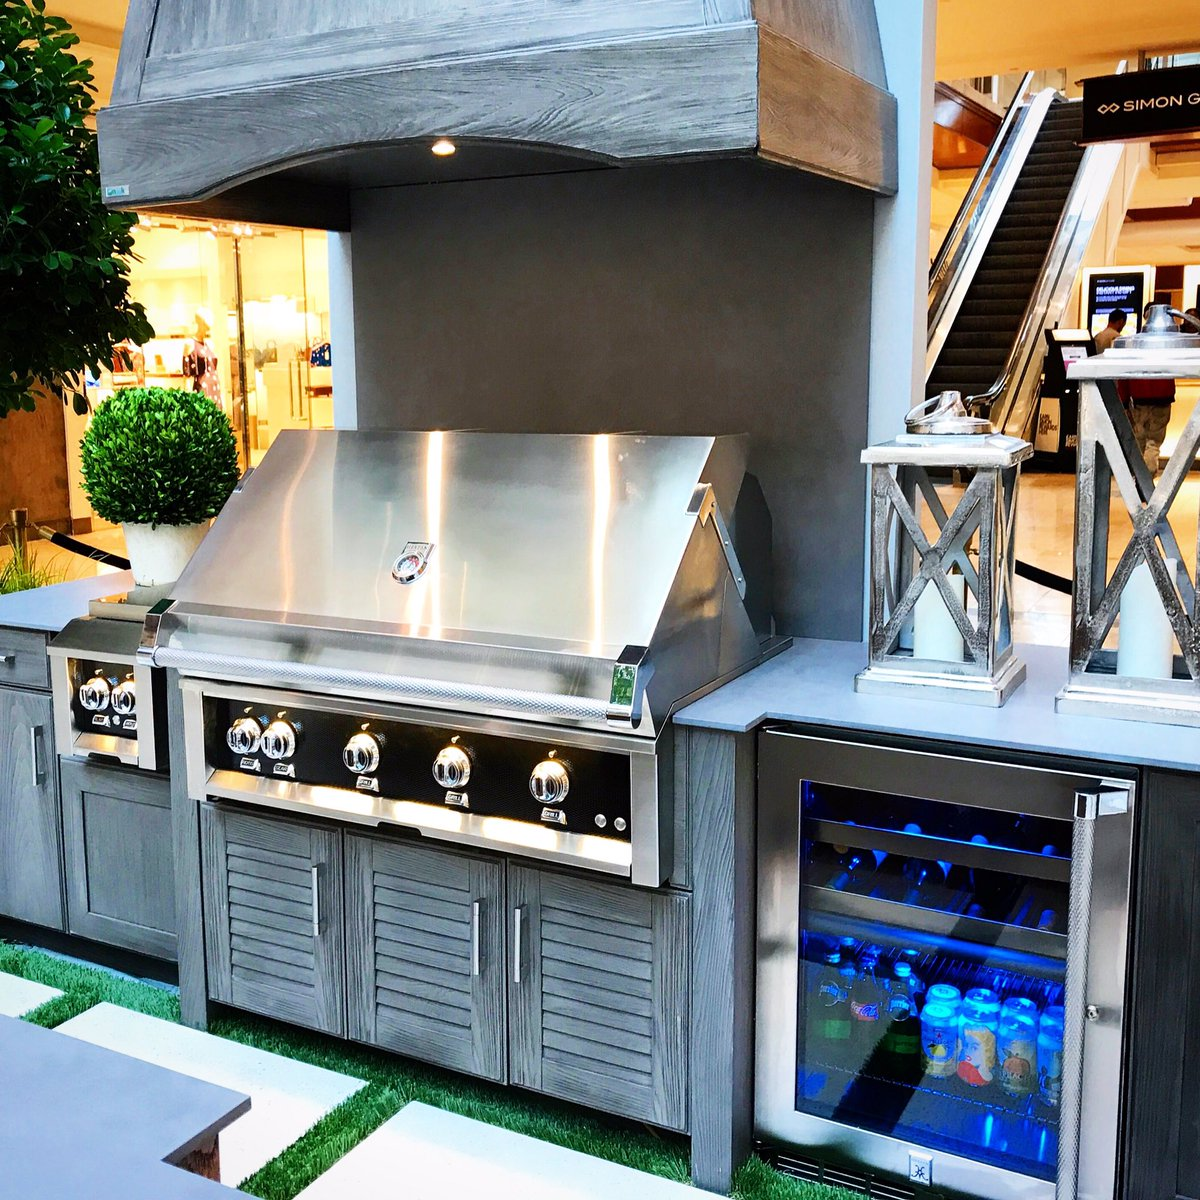 Hestan On Twitter Gorgeous Hestan Outdoor Kitchen Display At